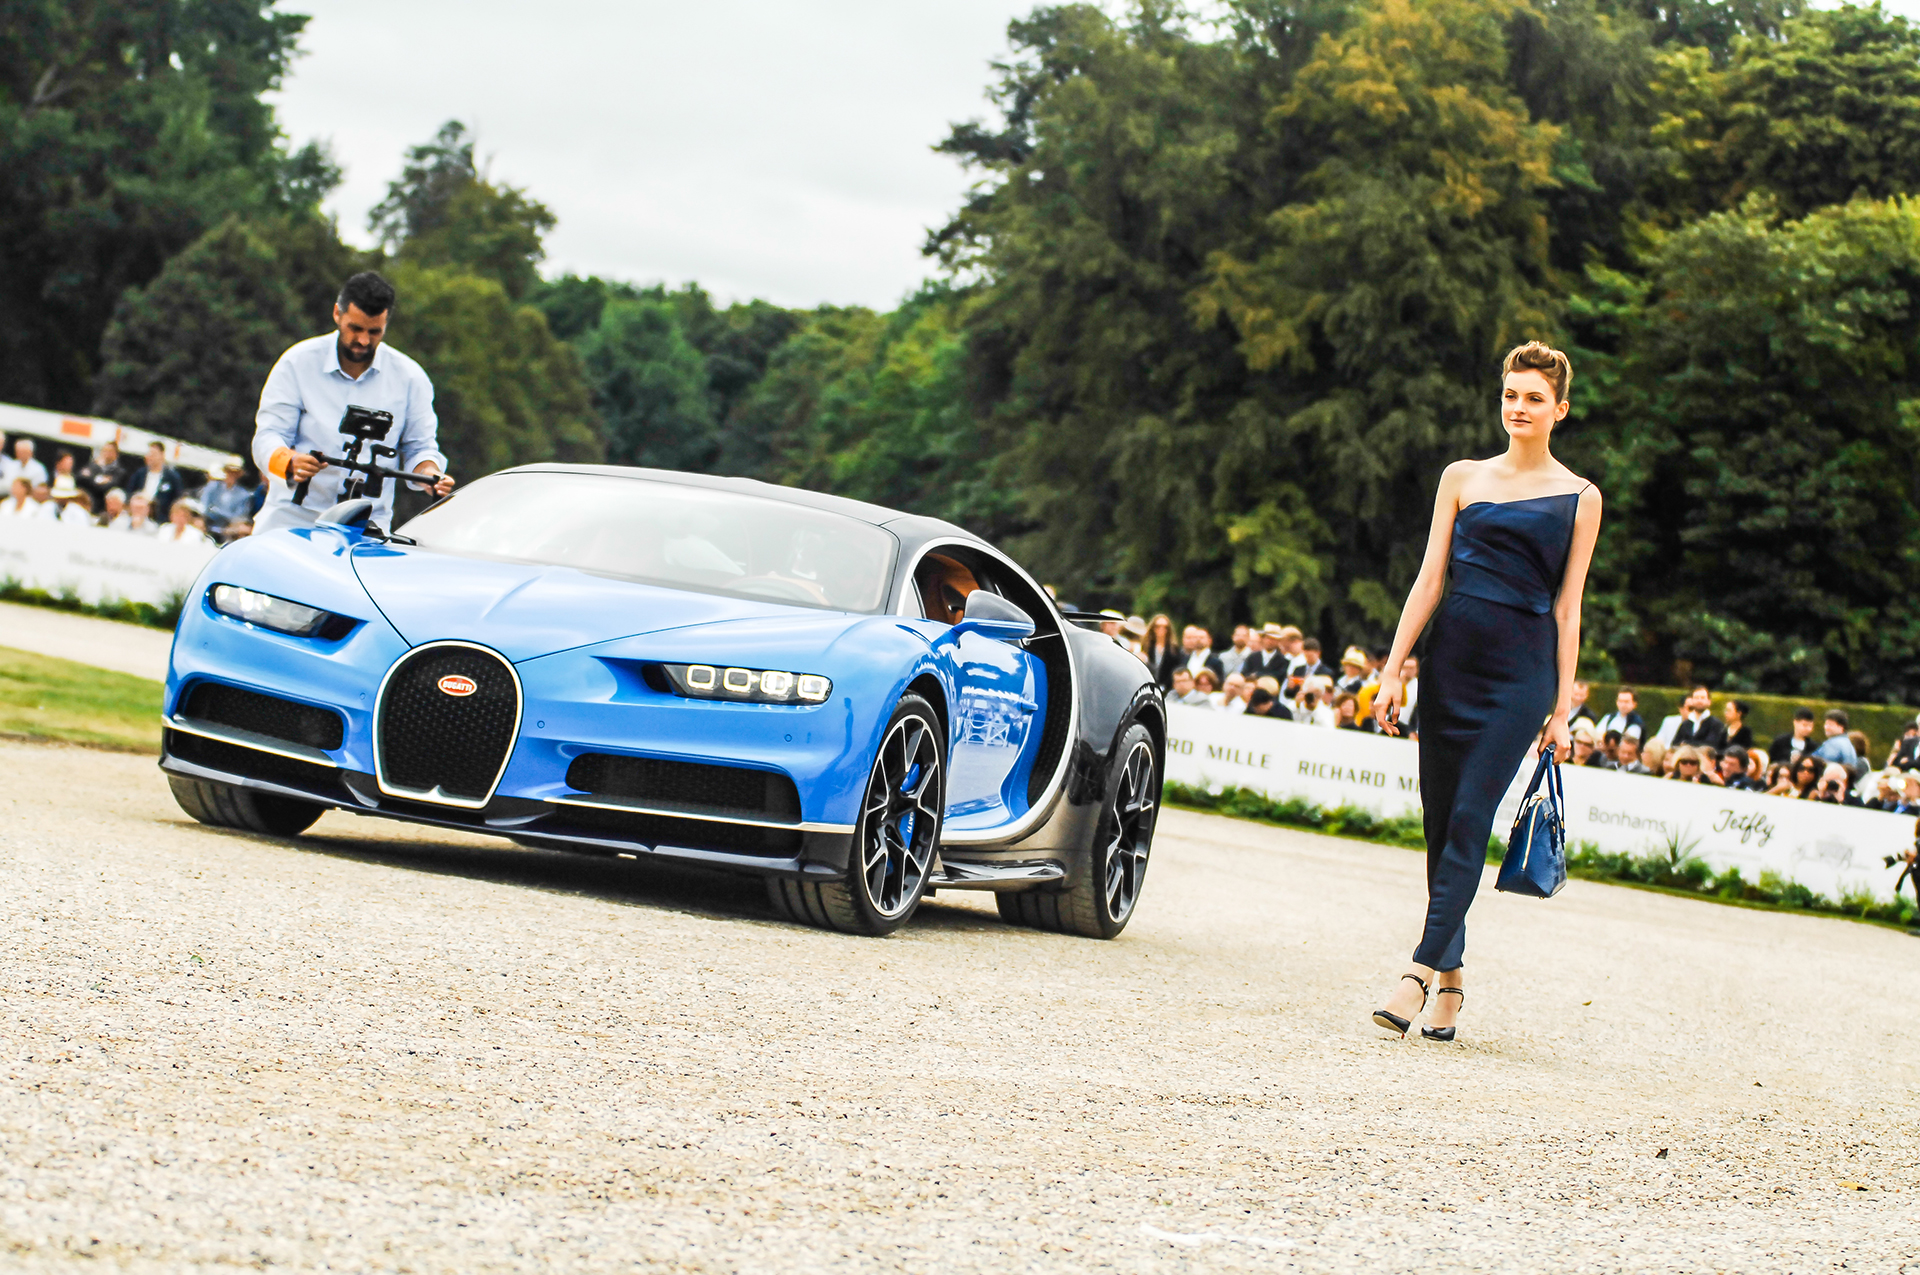 Chantilly 2016 - Bugatti Chiron - fashion Giorgio Armani - photo by Pierre-Yves Riom